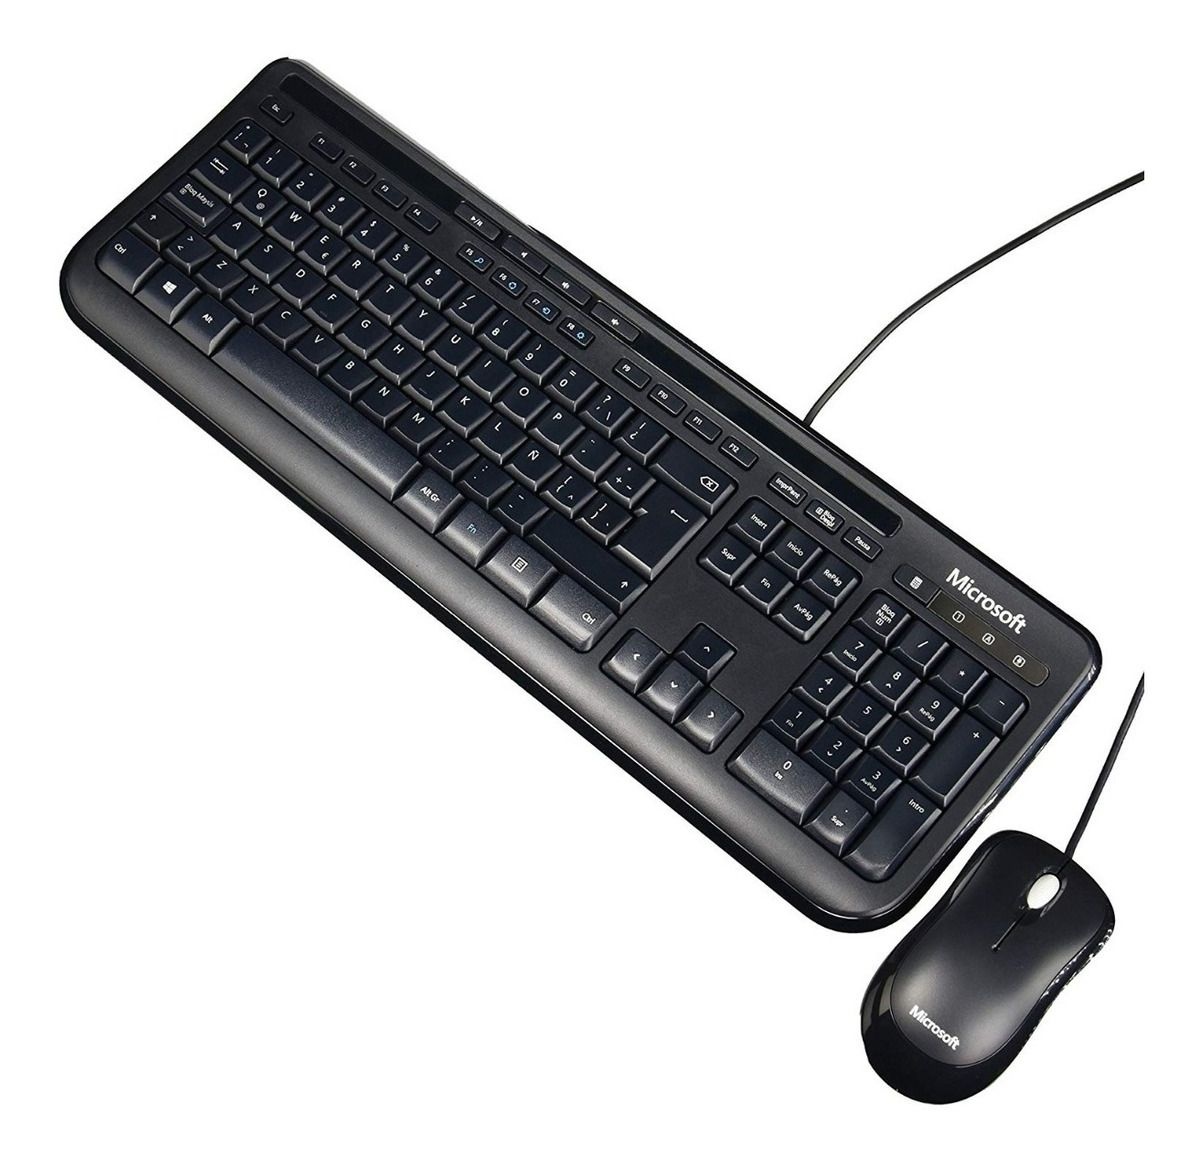 kit-teclado-y-mouse-microsoft-wired-600-usb-2-0-color-negro-funcionalidad-estandar-